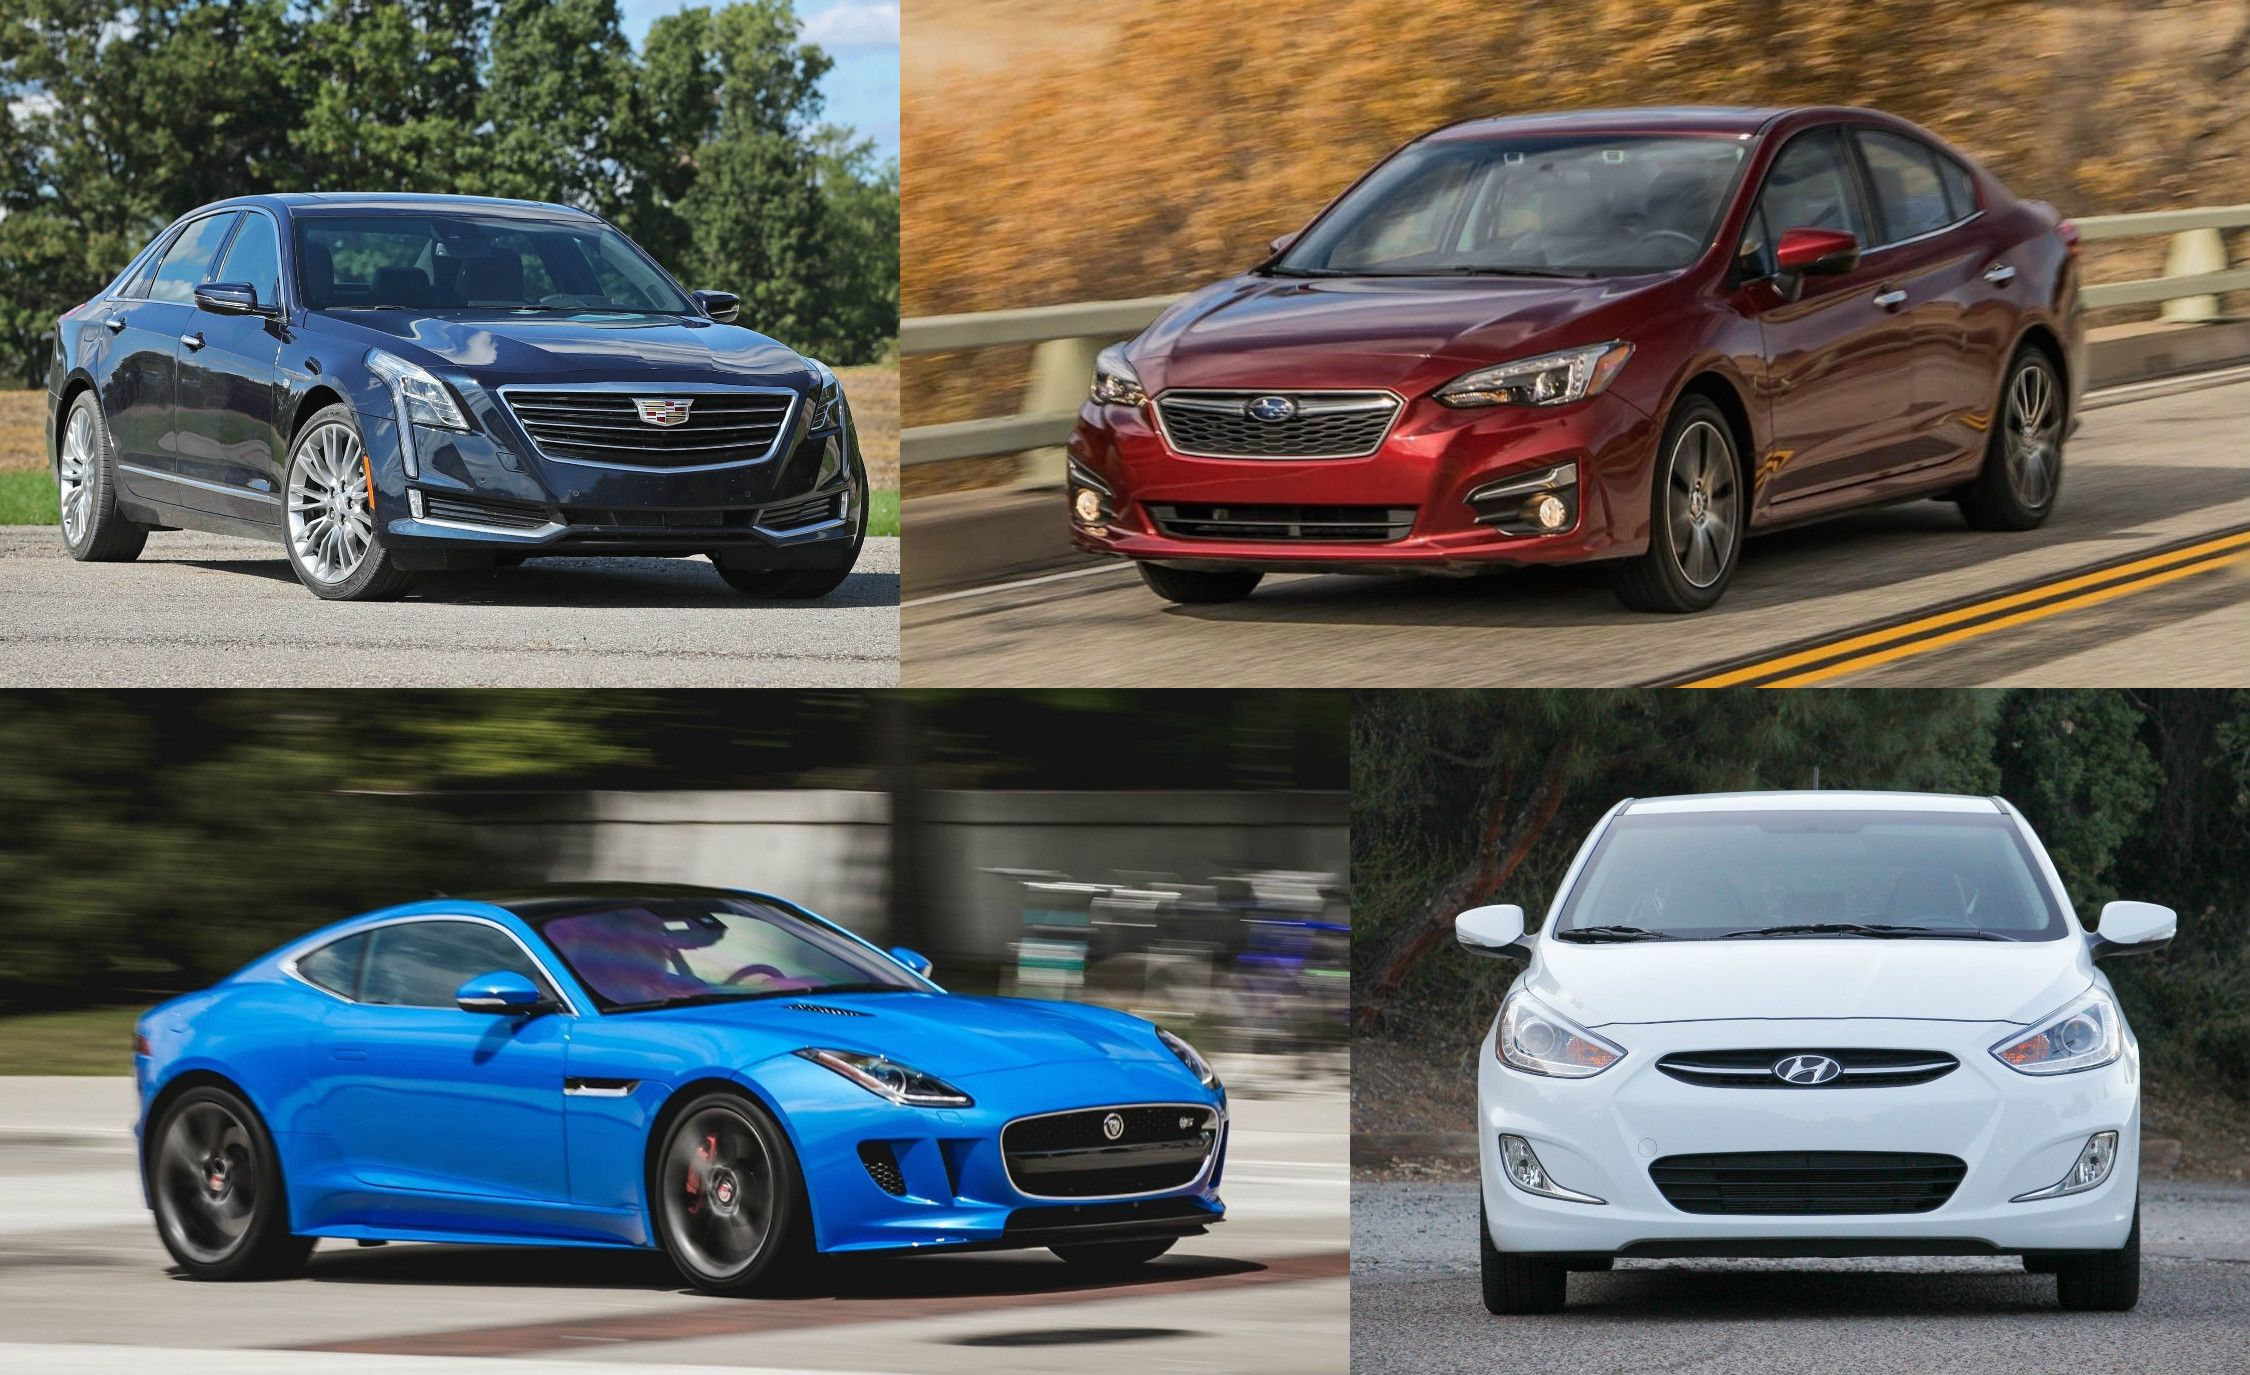 12 New Car Lease Deals to Make Your Memorial Day Weekend